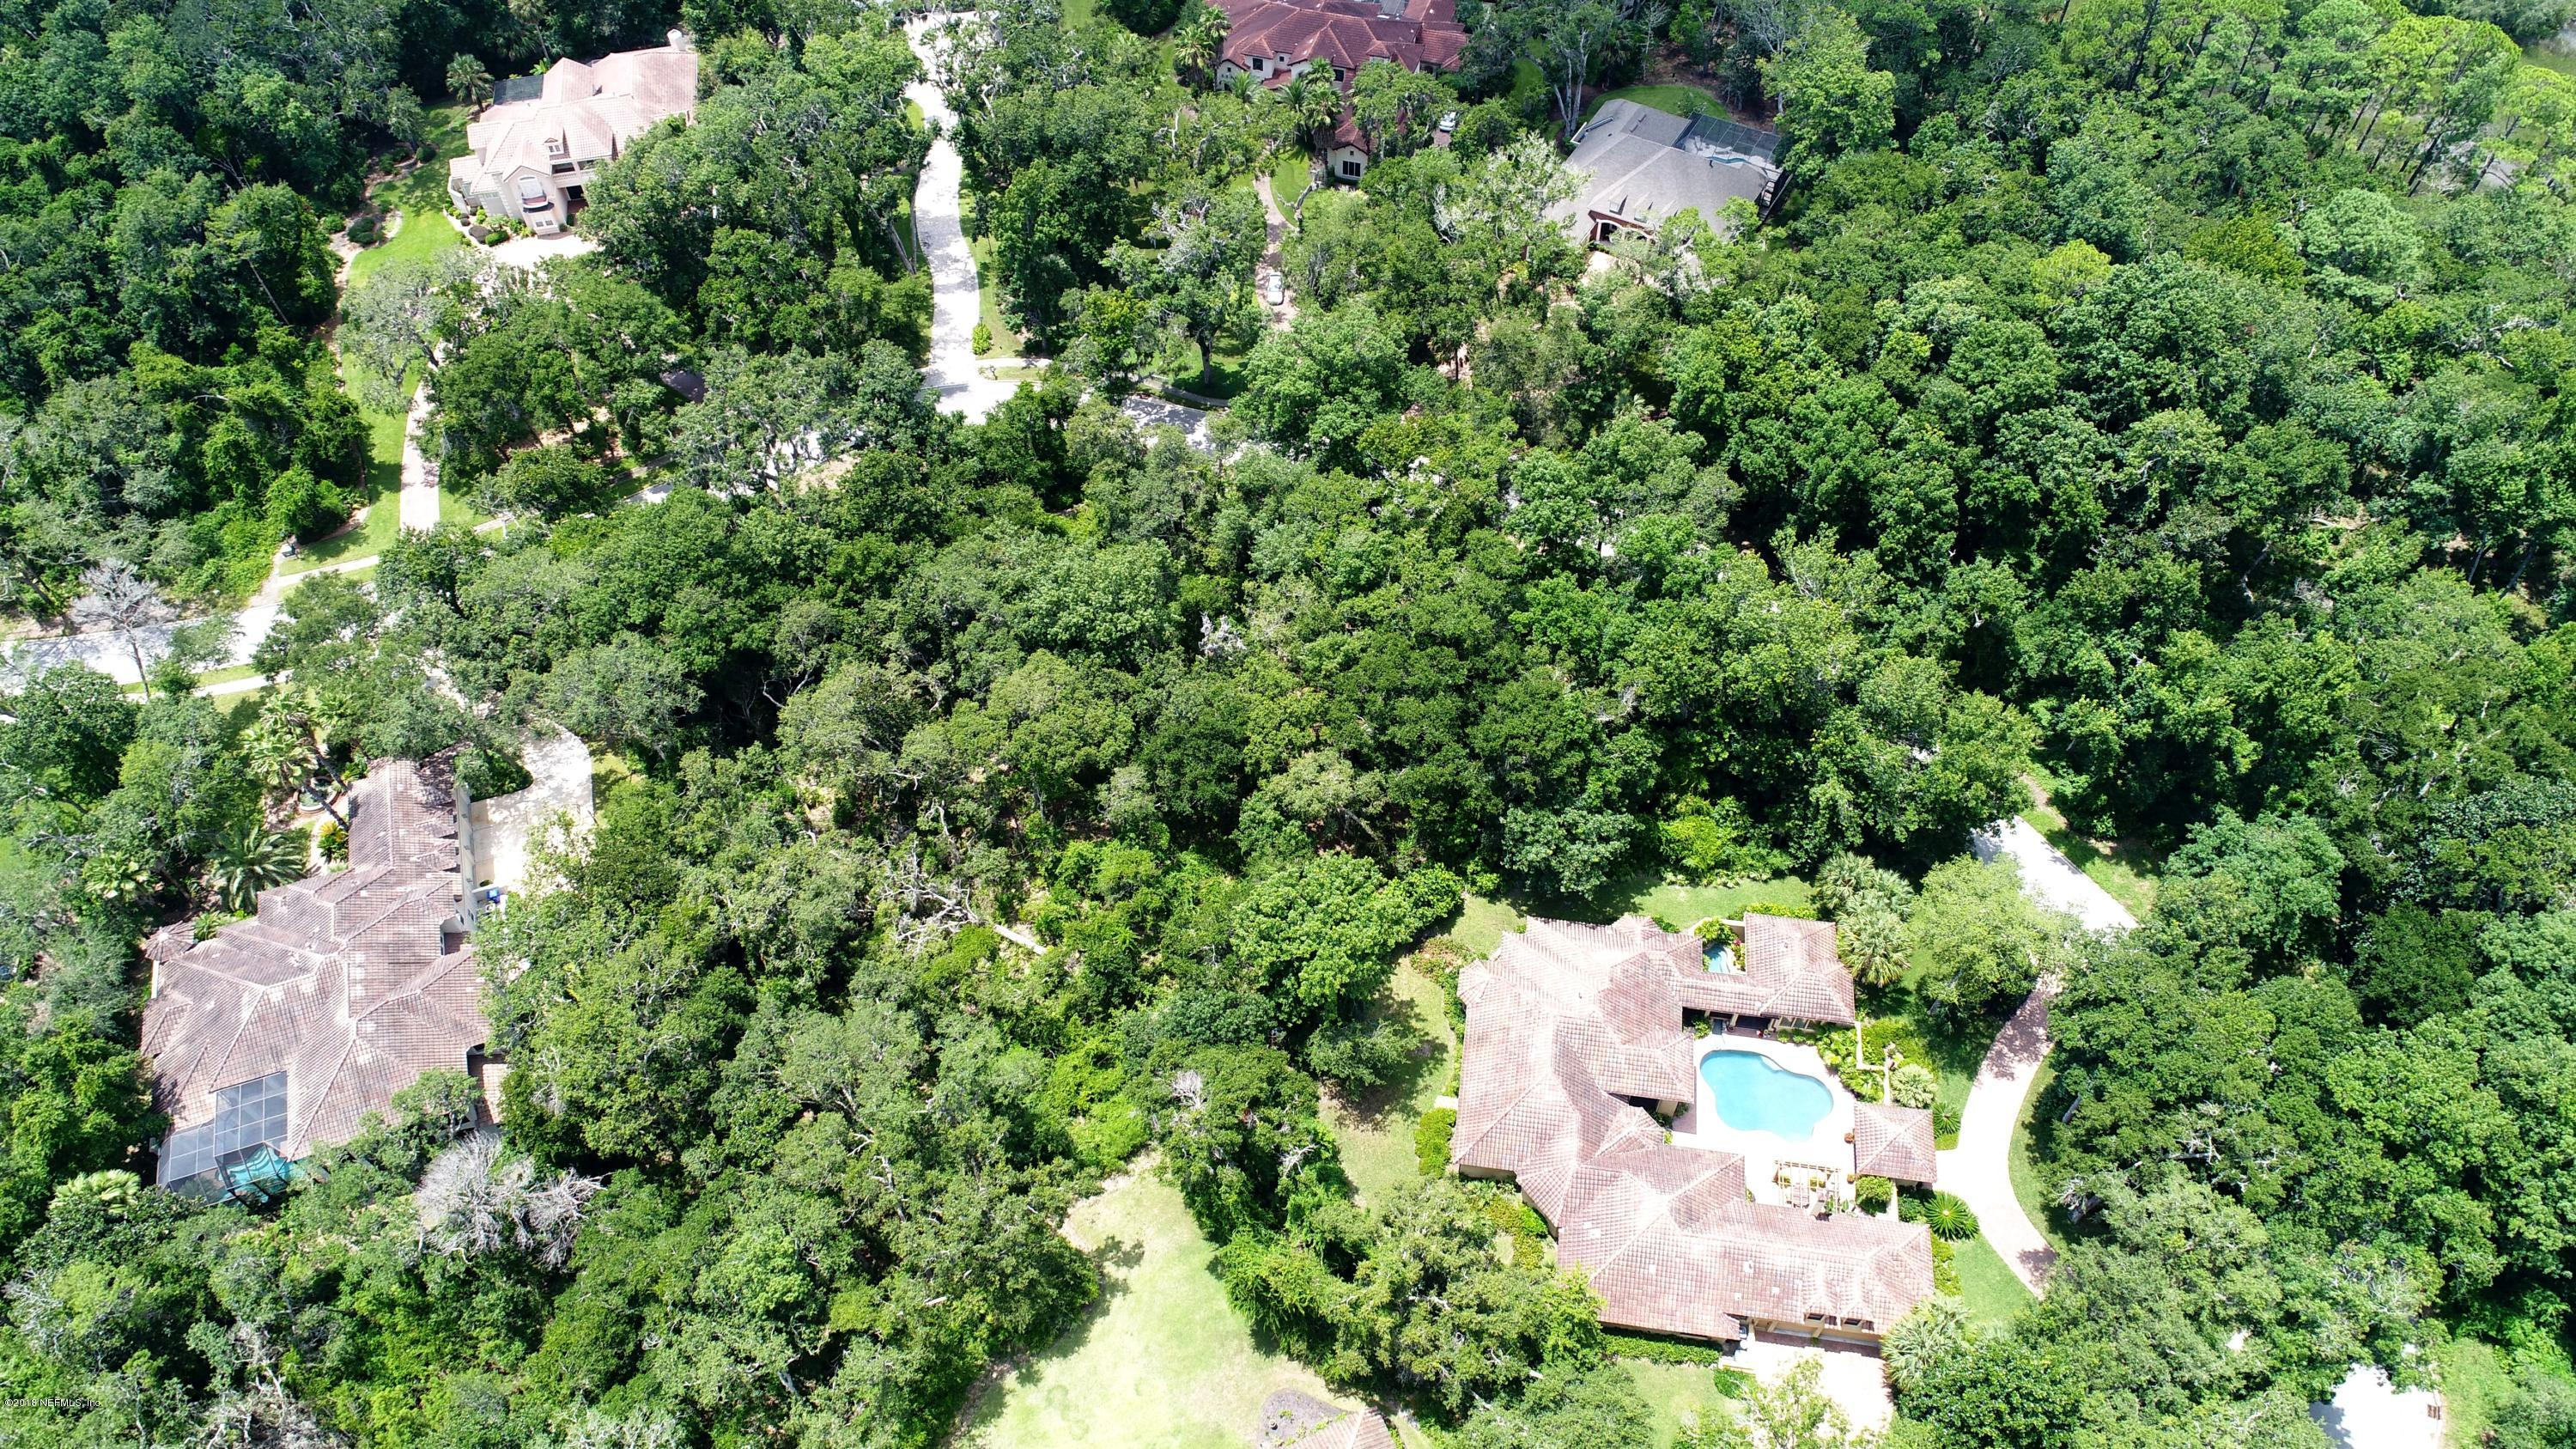 125 HICKORY HILL, ST AUGUSTINE, FLORIDA 32095, ,Vacant land,For sale,HICKORY HILL,893817